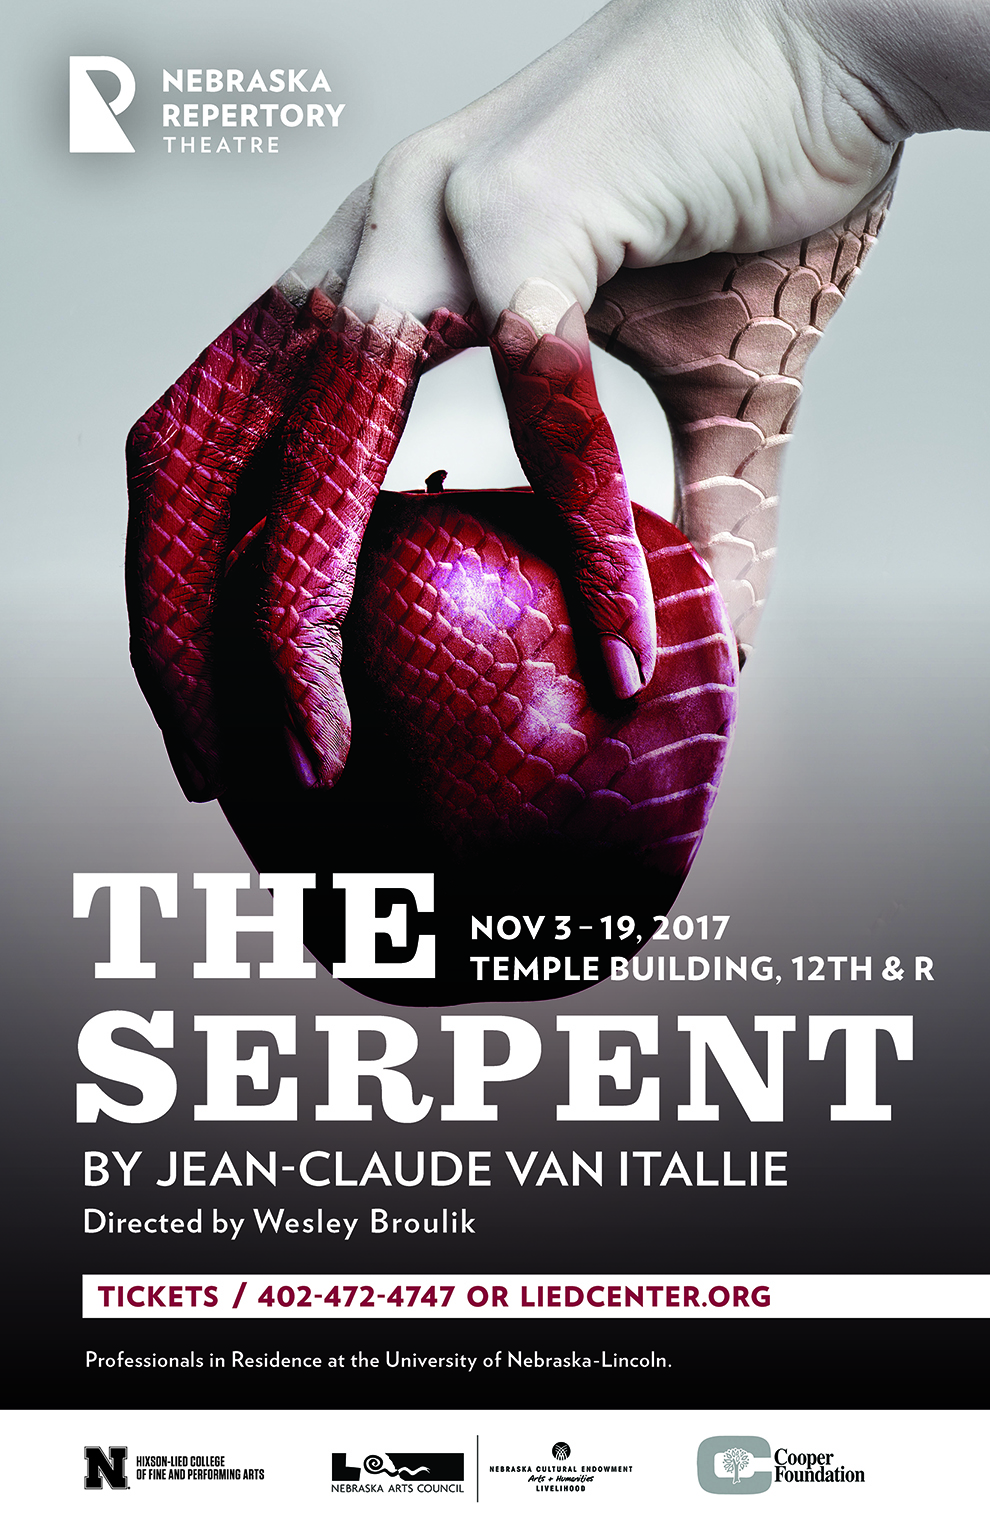 """A poster featuring a hand holding an apple, with reptilian scales crwaling up from the apple onto the hand. The headine of the poster reads """"The Serpent""""."""